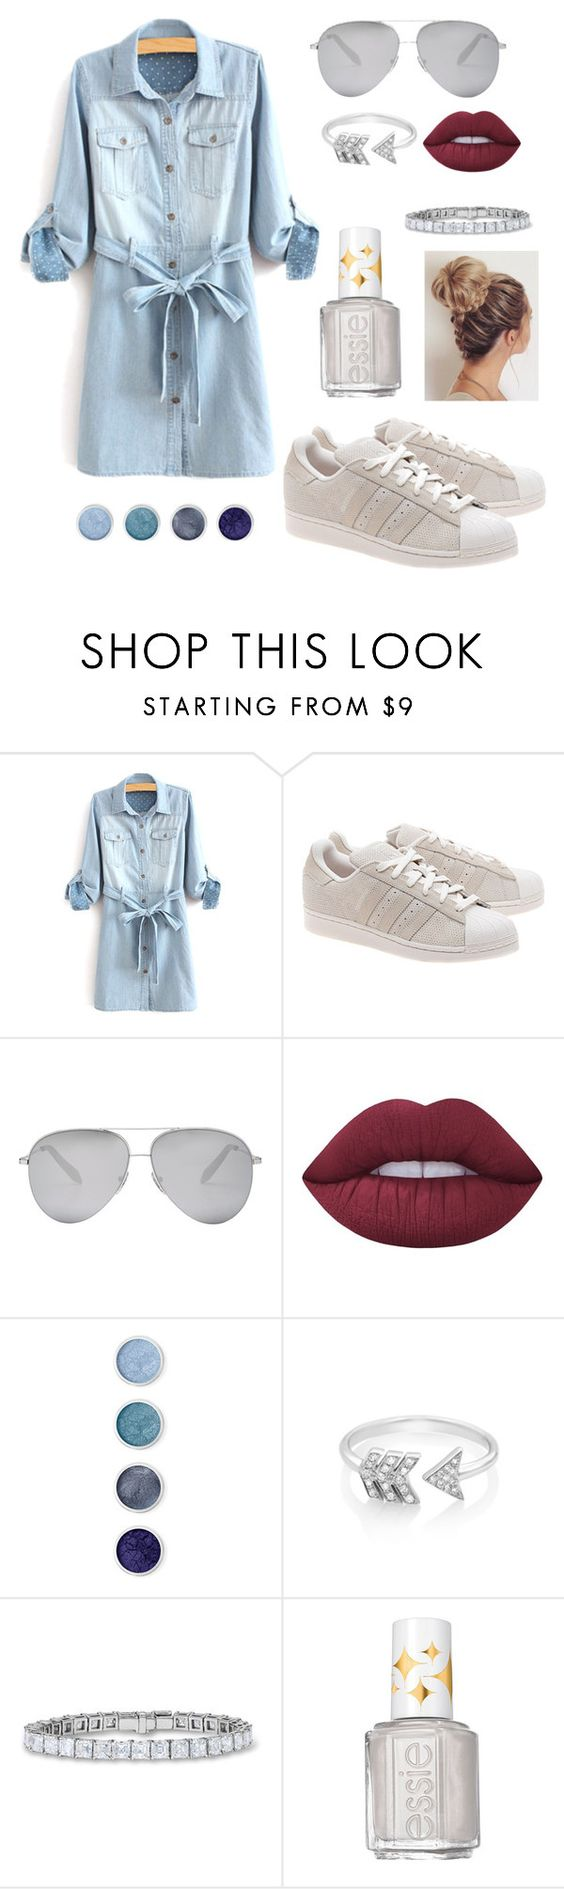 """Simple."" by ejayy1215 ❤ liked on Polyvore featuring adidas Originals, Victoria Beckham, Lime Crime, Terre Mère, EF Collection and Essie"